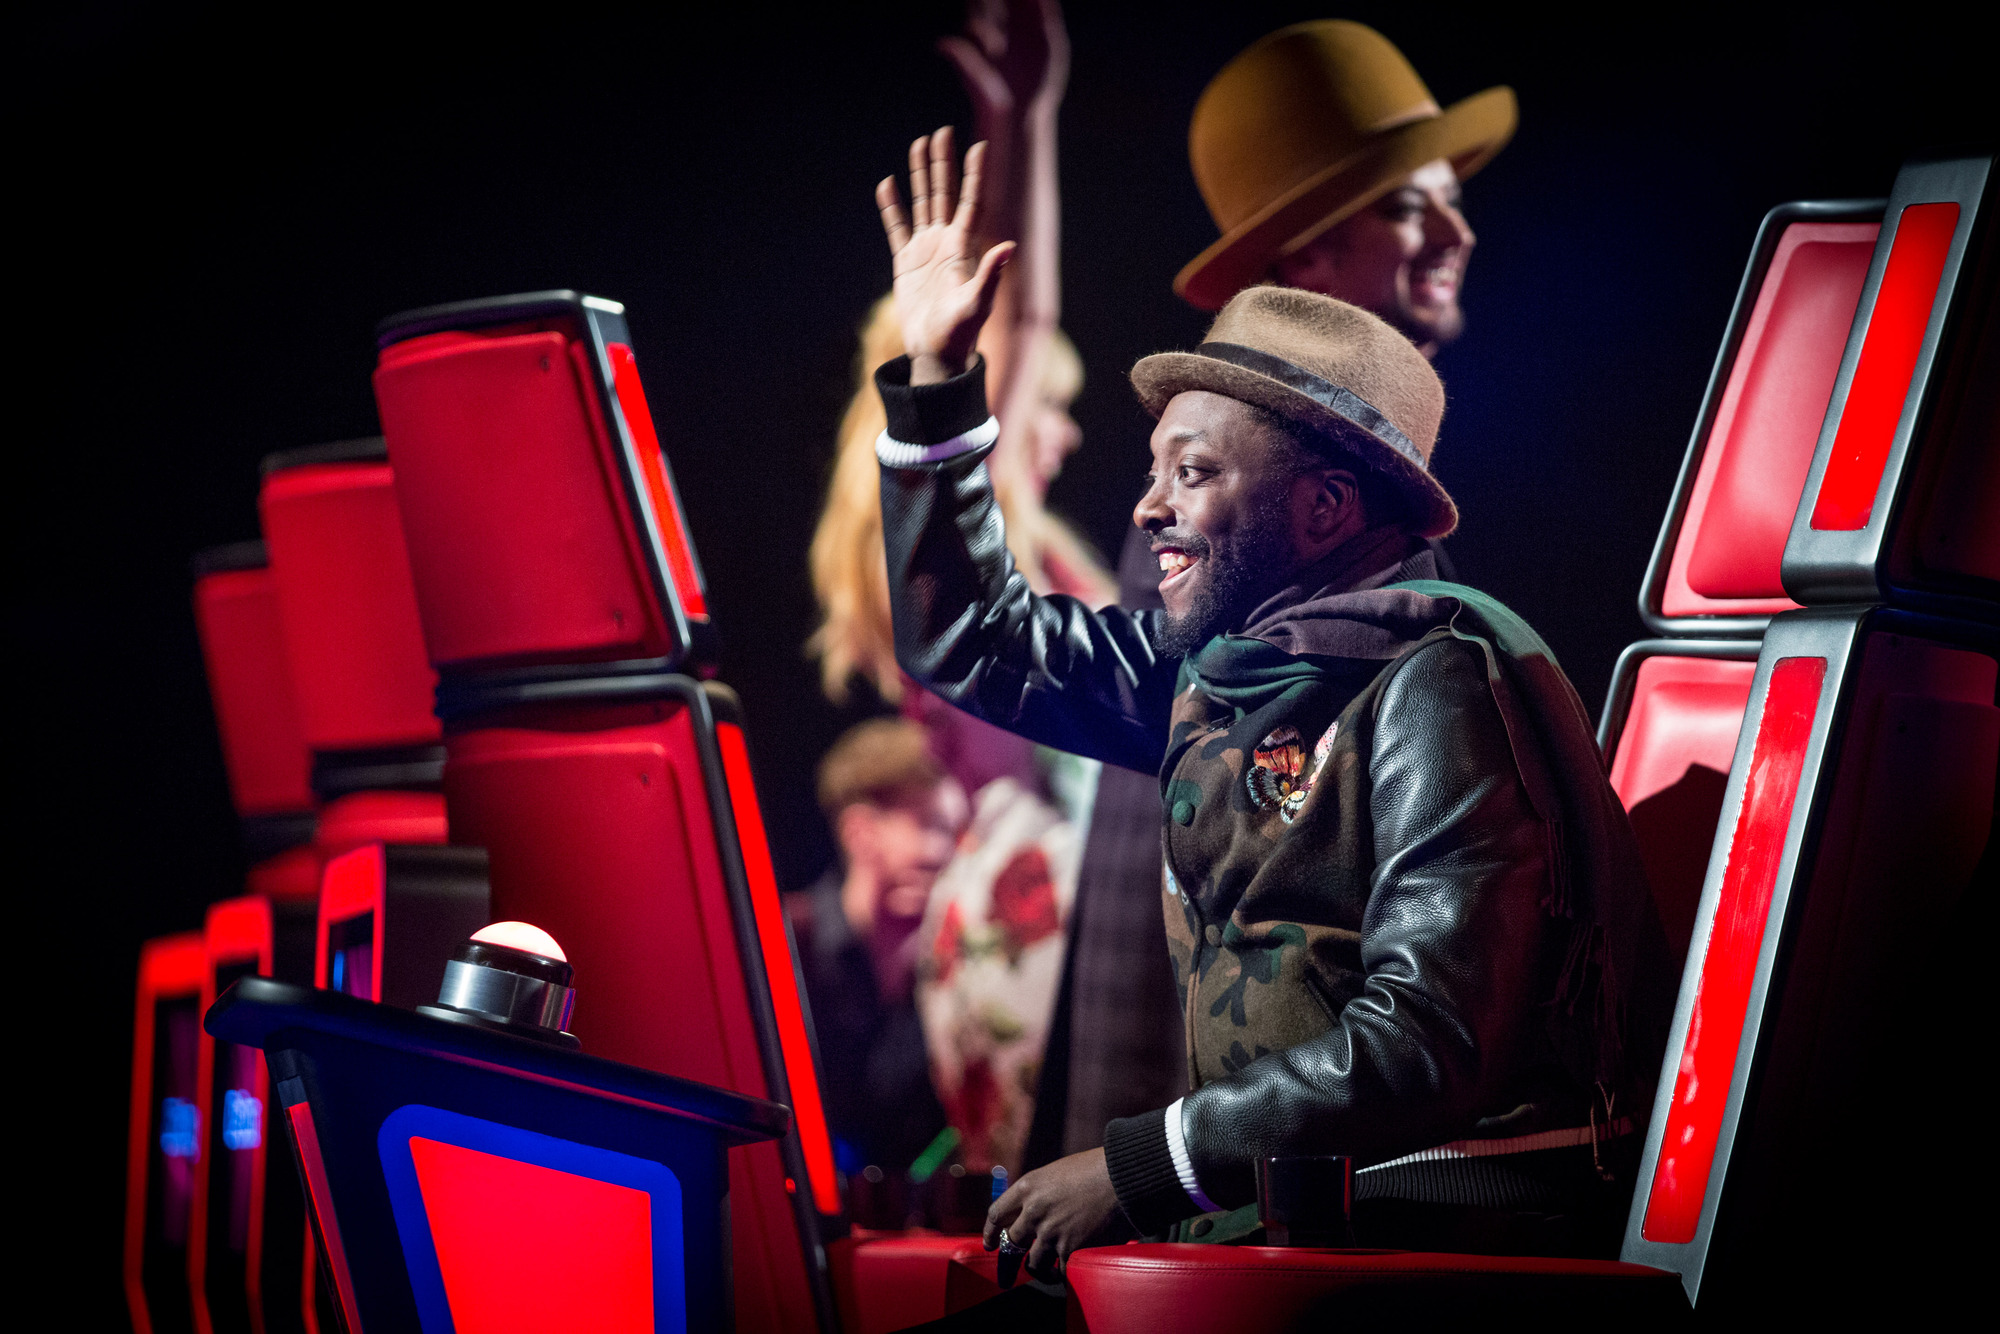 The Voice 2016: 15 things we noticed during the second battle round